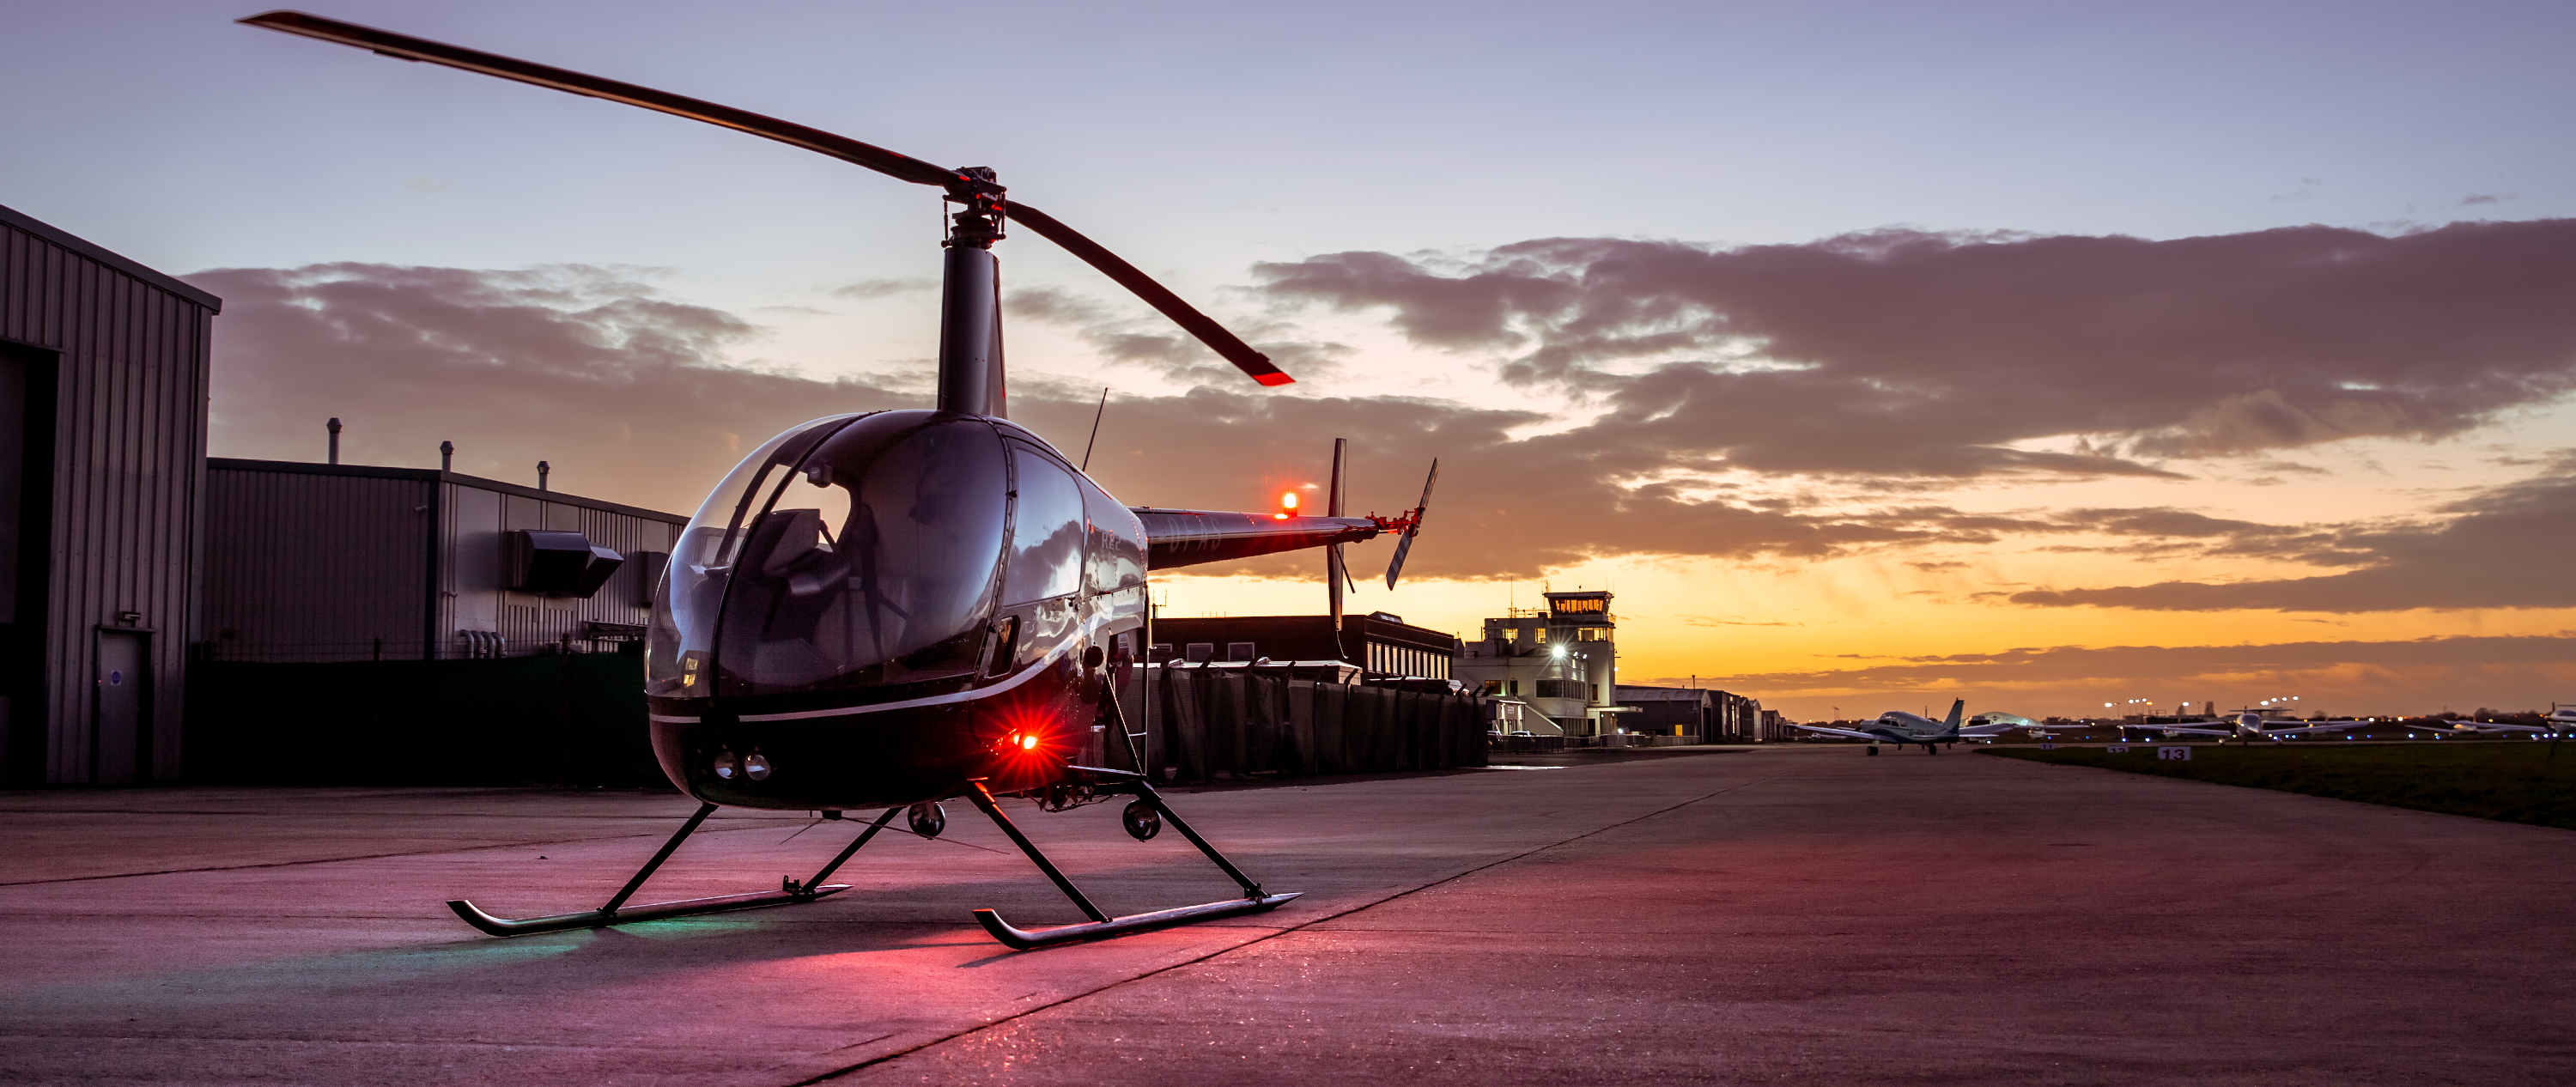 Robinson R22 helicopter in sunset